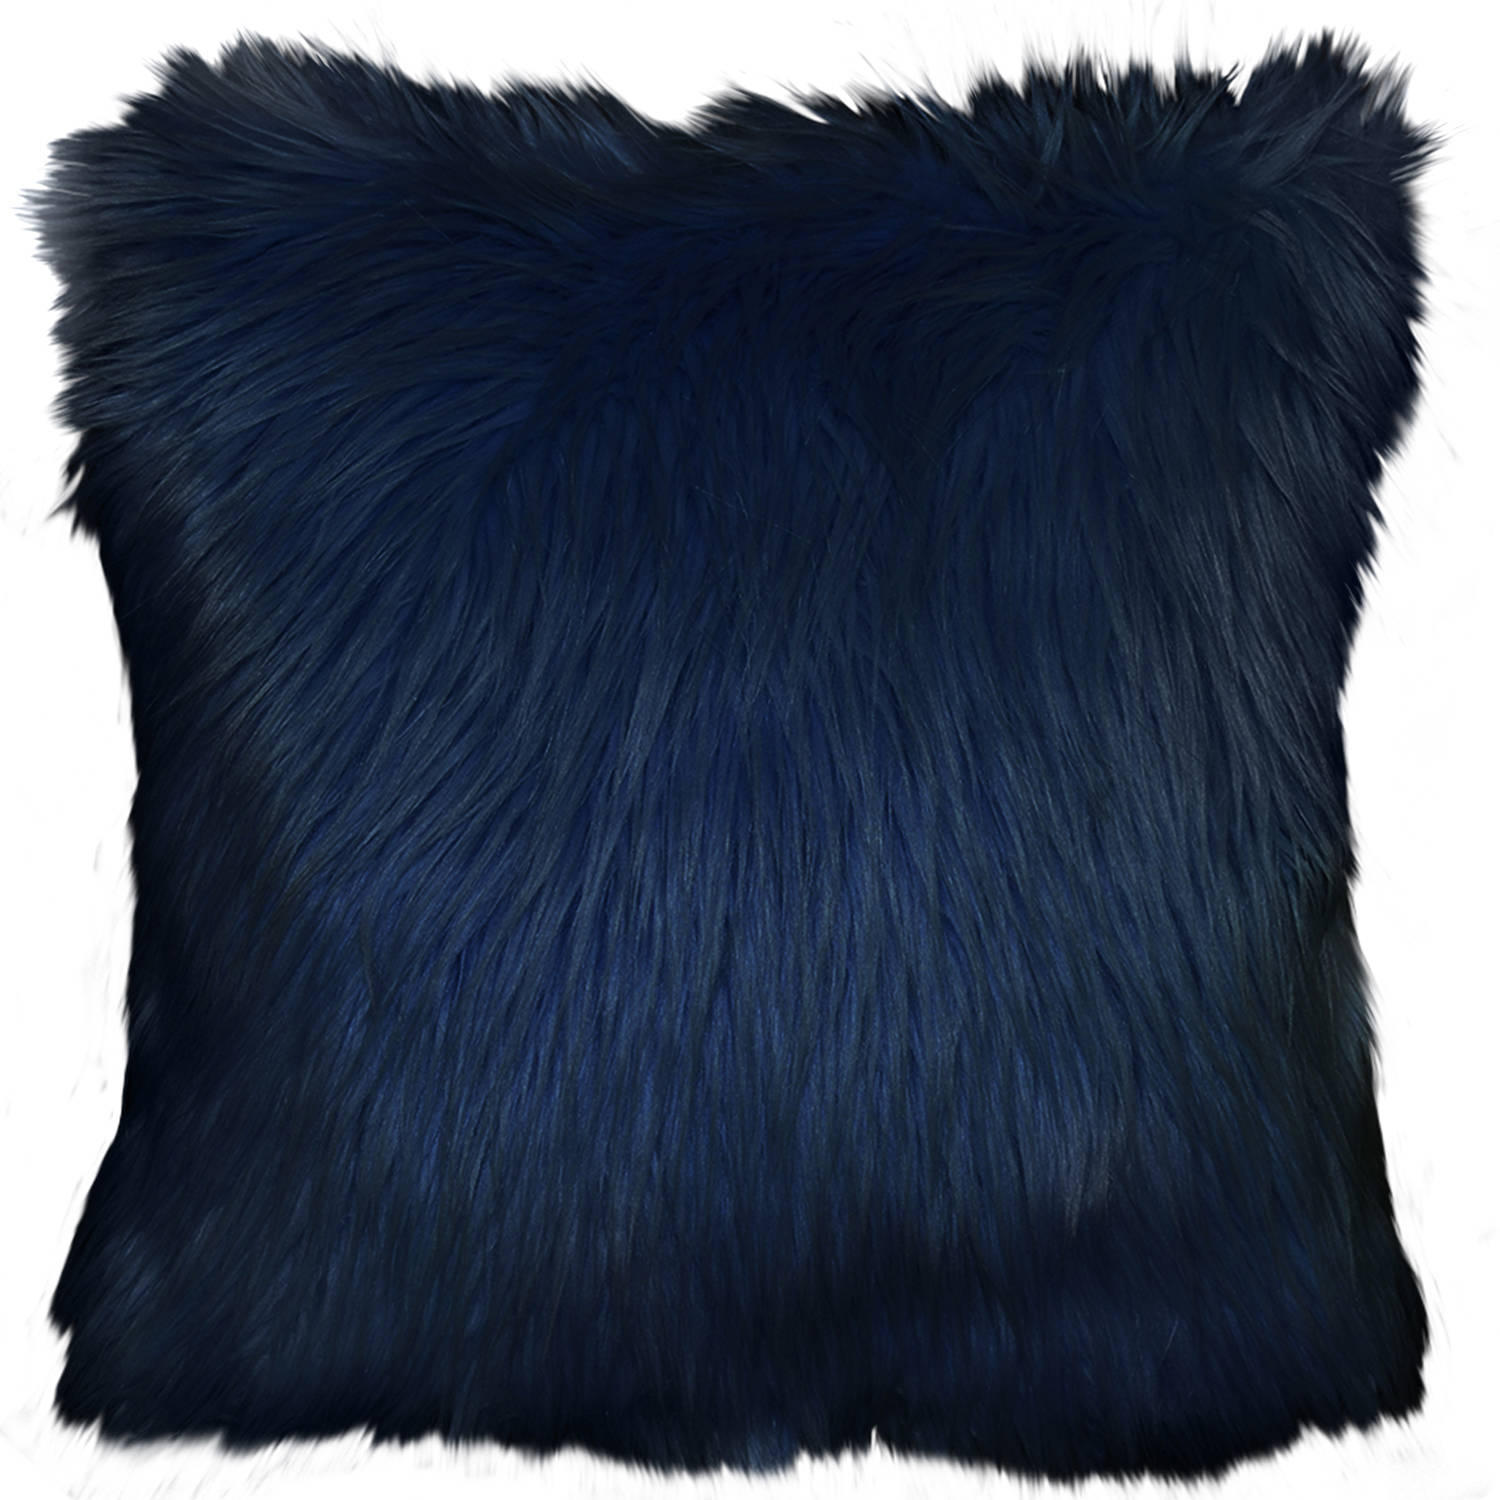 Bed chair pillow walmart - Better Homes And Gardens 16 X 16 Faux Fur Decorative Pillow Walmart Com